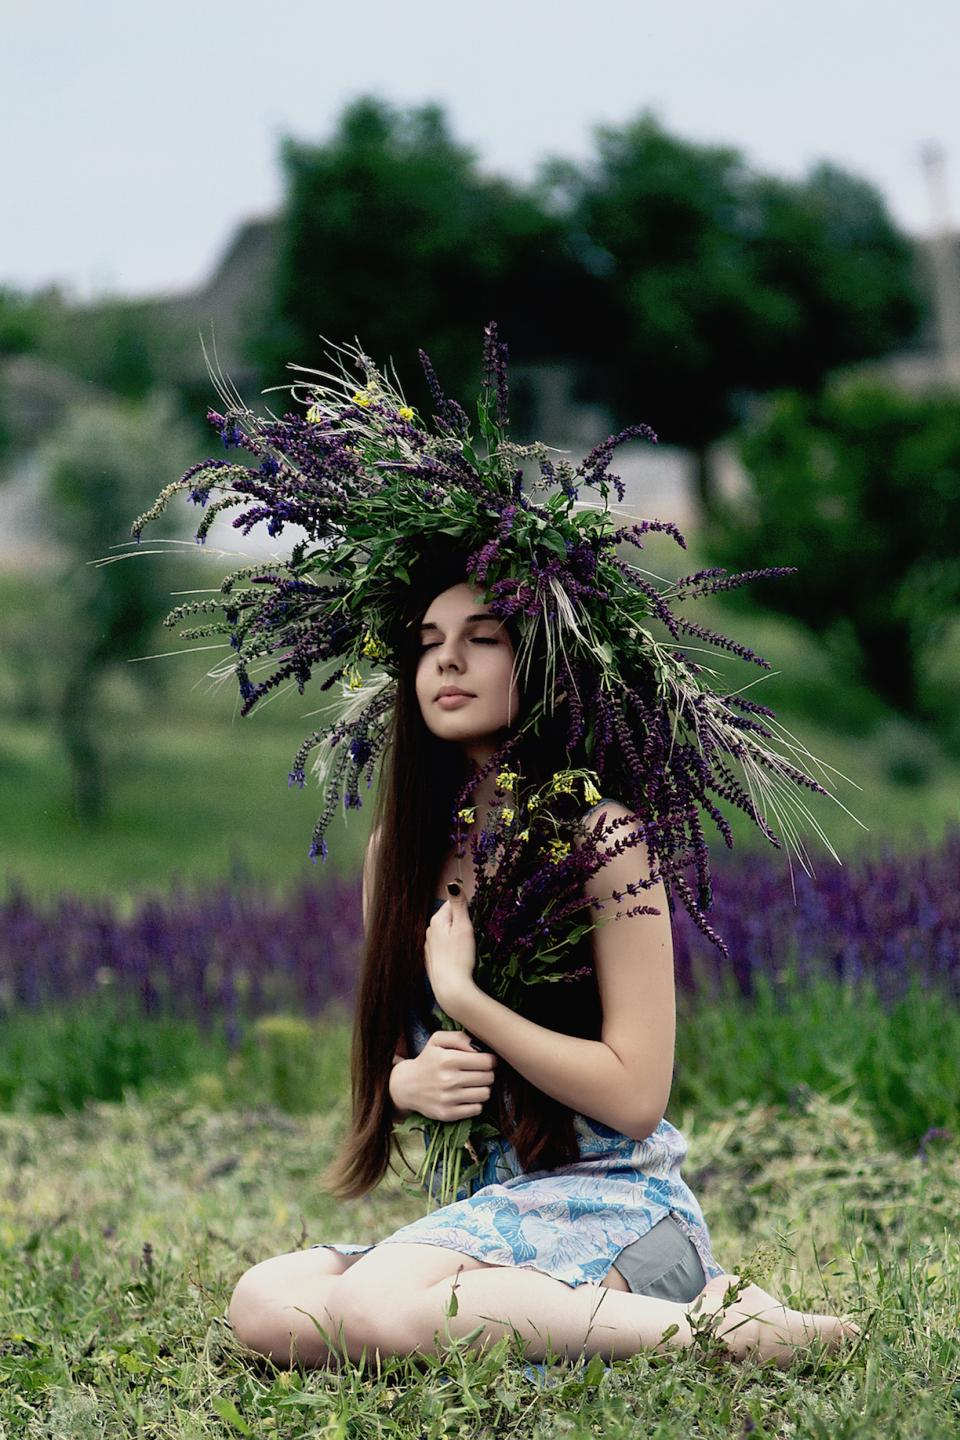 nature grass plants flowers violet purple people woman girl lady green